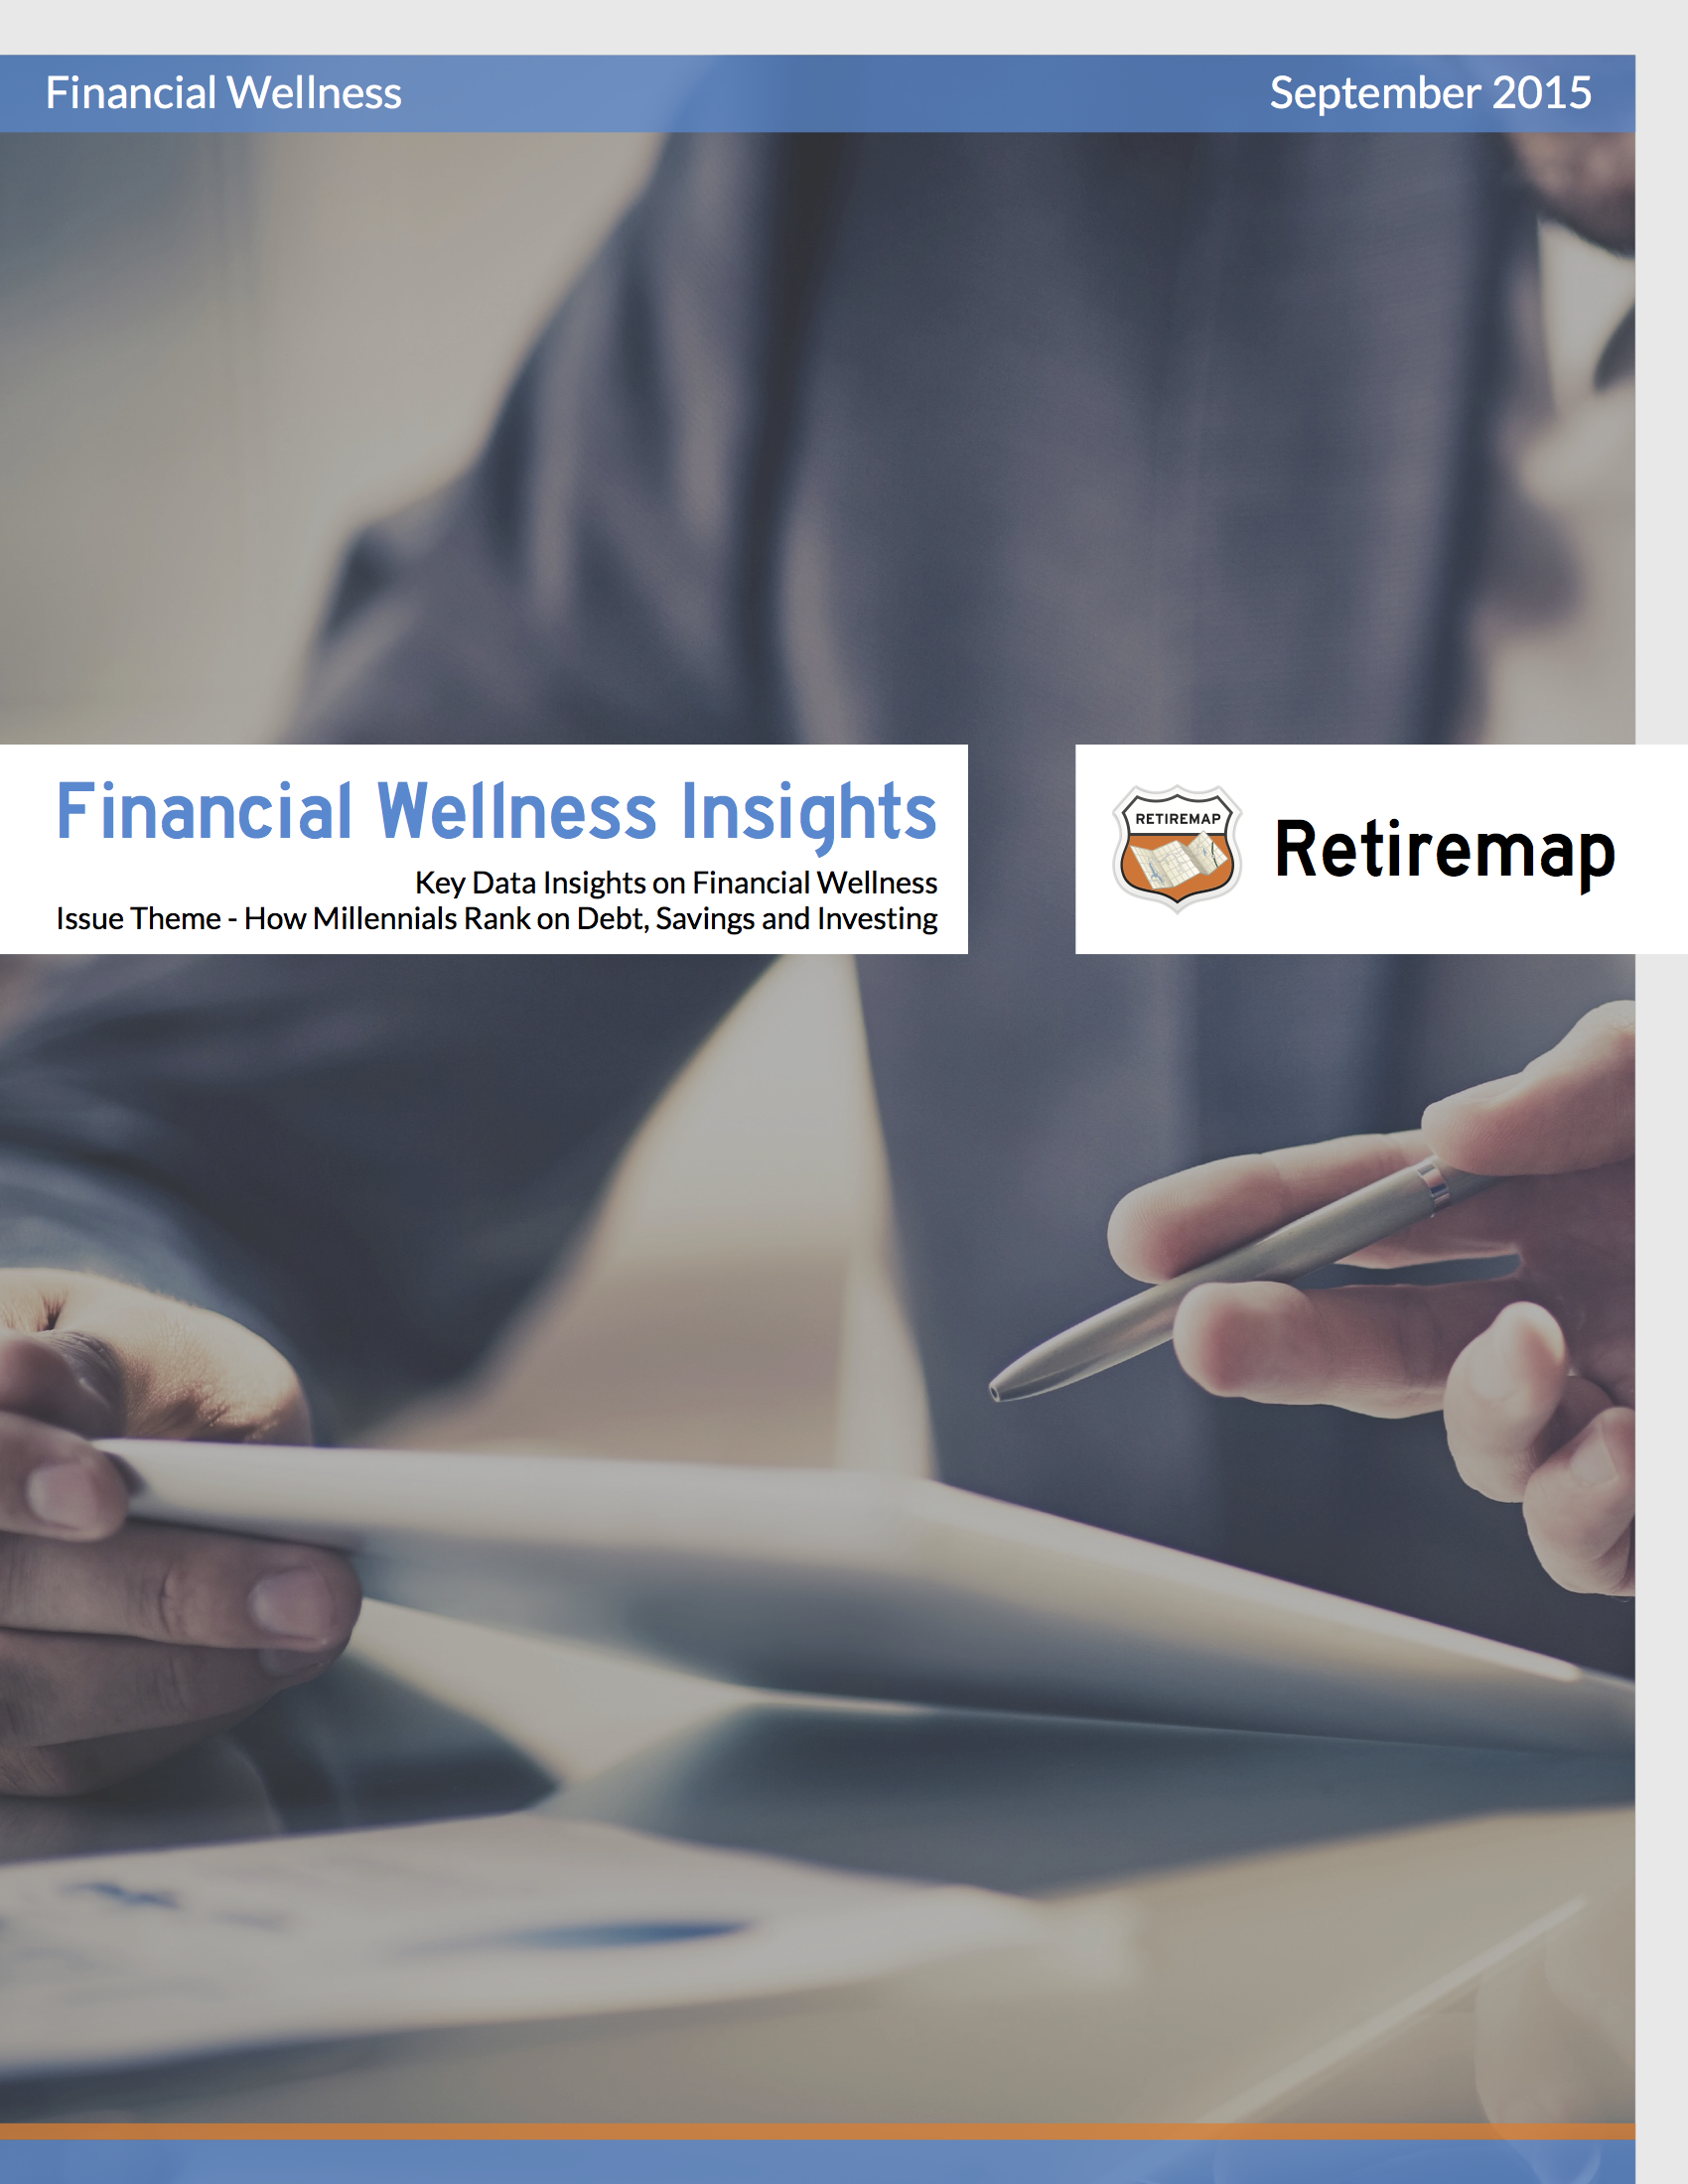 Financial Wellness Insights_Millennials_9.2015